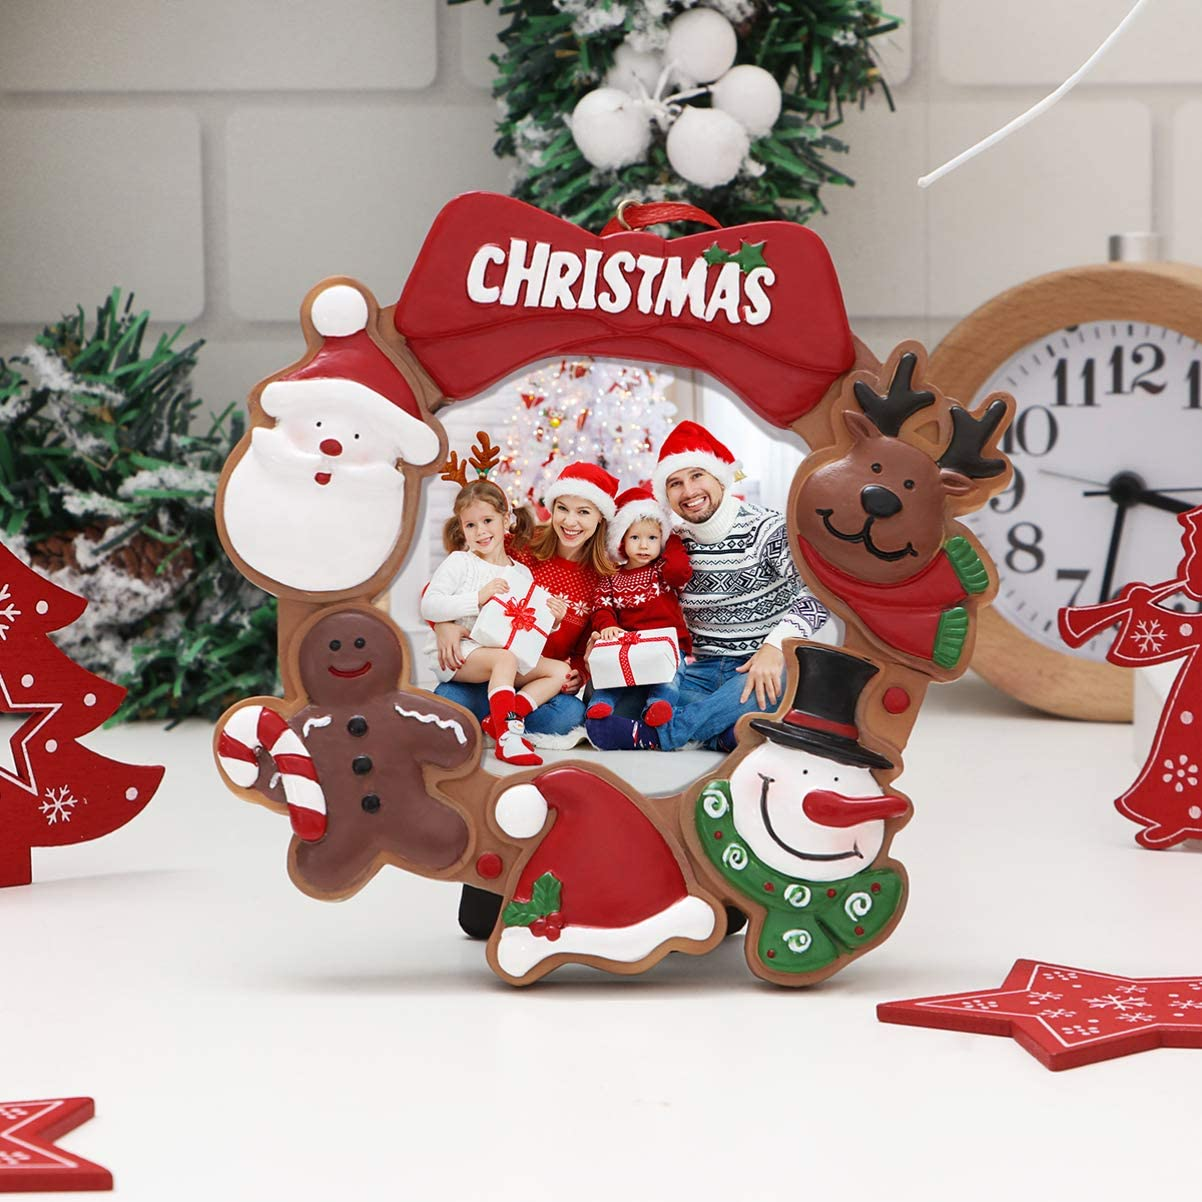 Christmas Photo Frame Ornaments, Resin Picture Frame Xmas Tree Party Decorations Family Picture Keepsake Decor